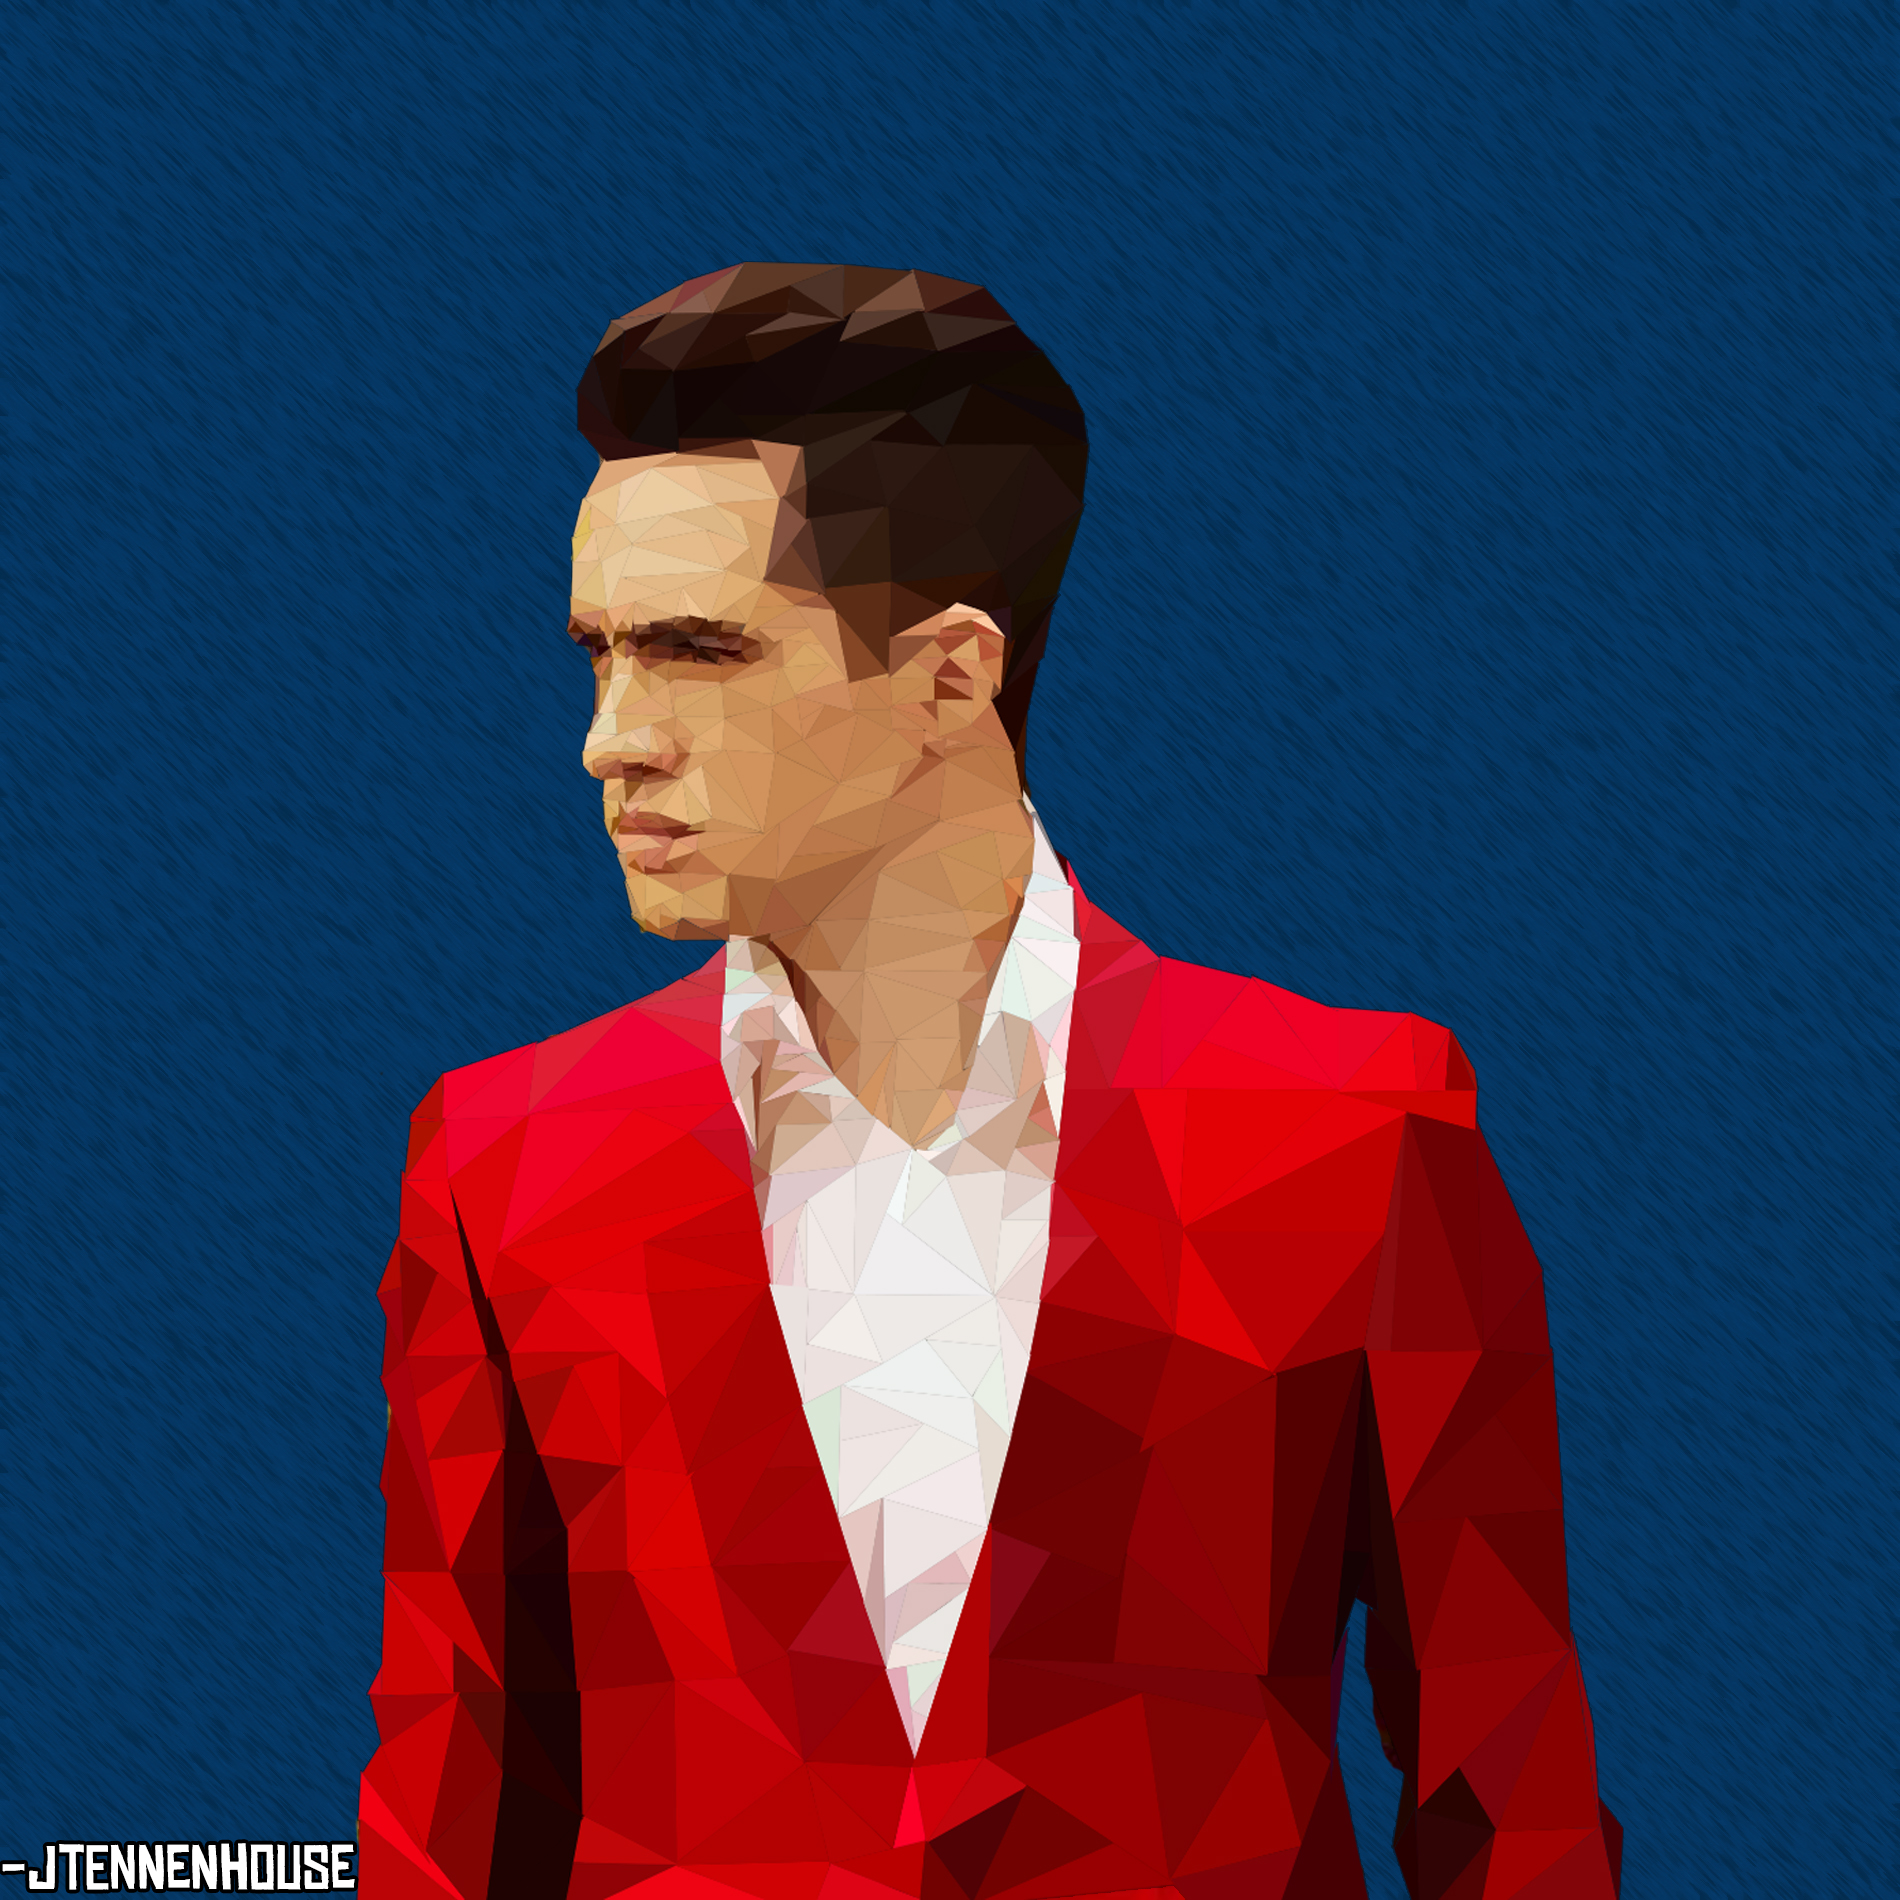 panic at the disco iphone 4 wallpaper